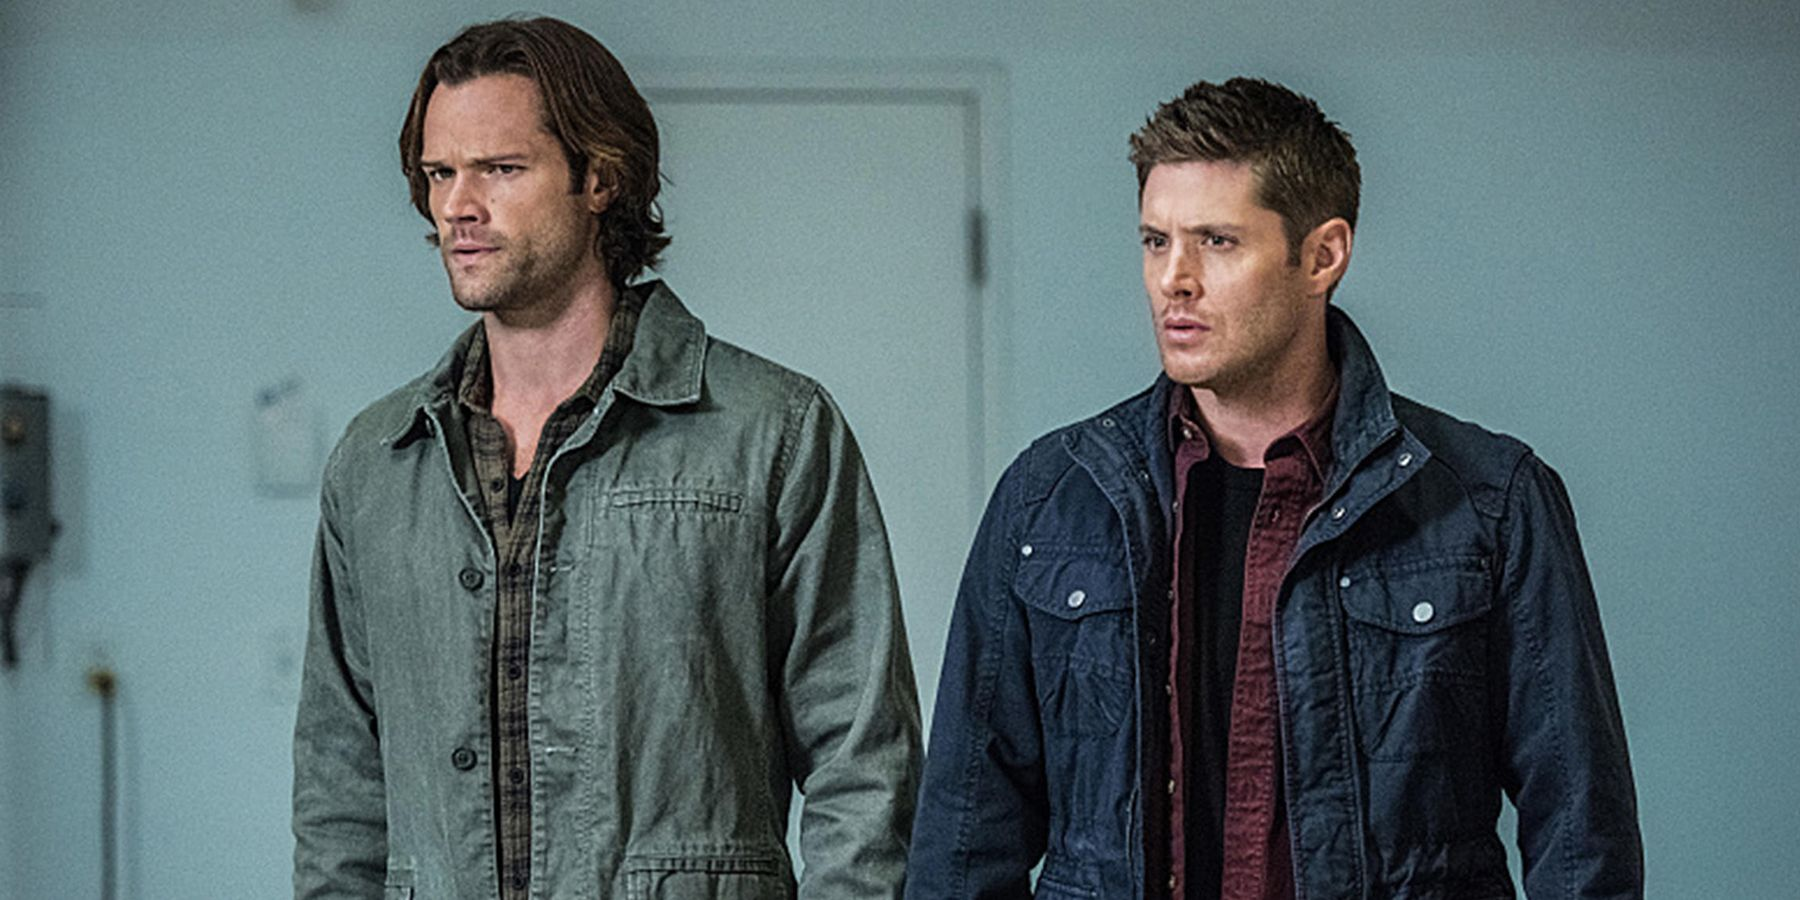 Supernatural Cast Promises the Series Finale Will Satisfy Fans